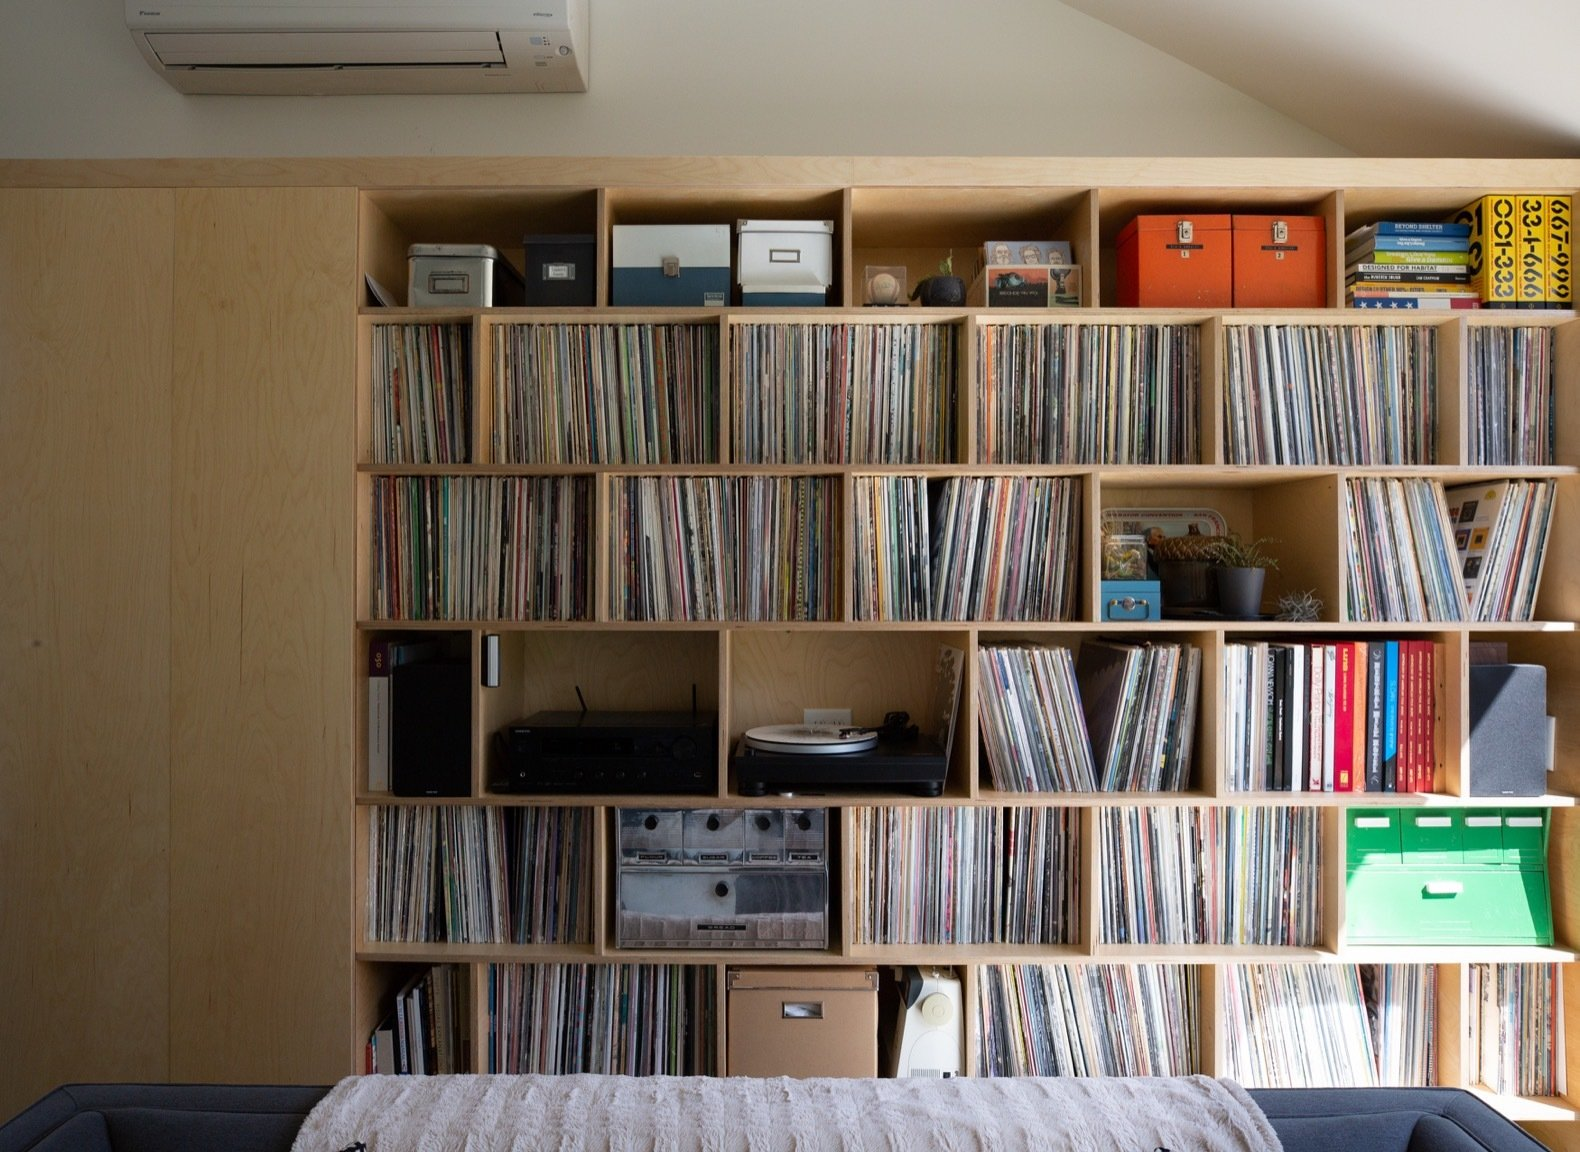 Storage Room and Shelves Storage Type Scott's extensive record collection occupies a large portion of the living room wall.  Photo 10 of 20 in Budget Breakdown: A Portland Couple Design and Build a Compact Home For $222K